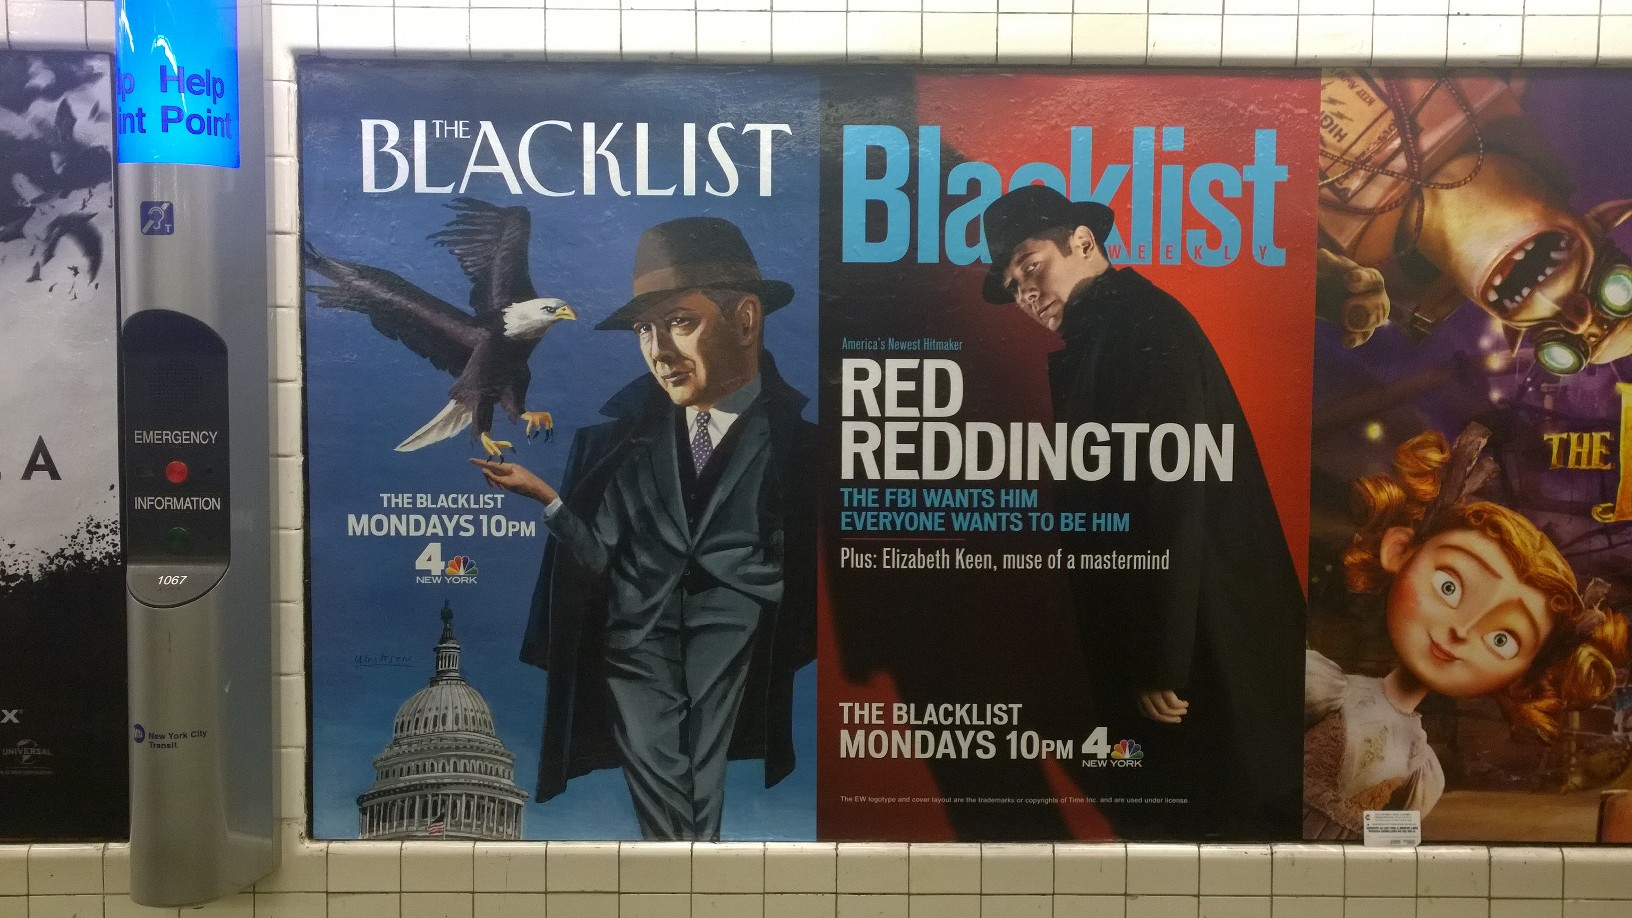 Blacklist Werbung The NewYorker und Entertainment Weekly